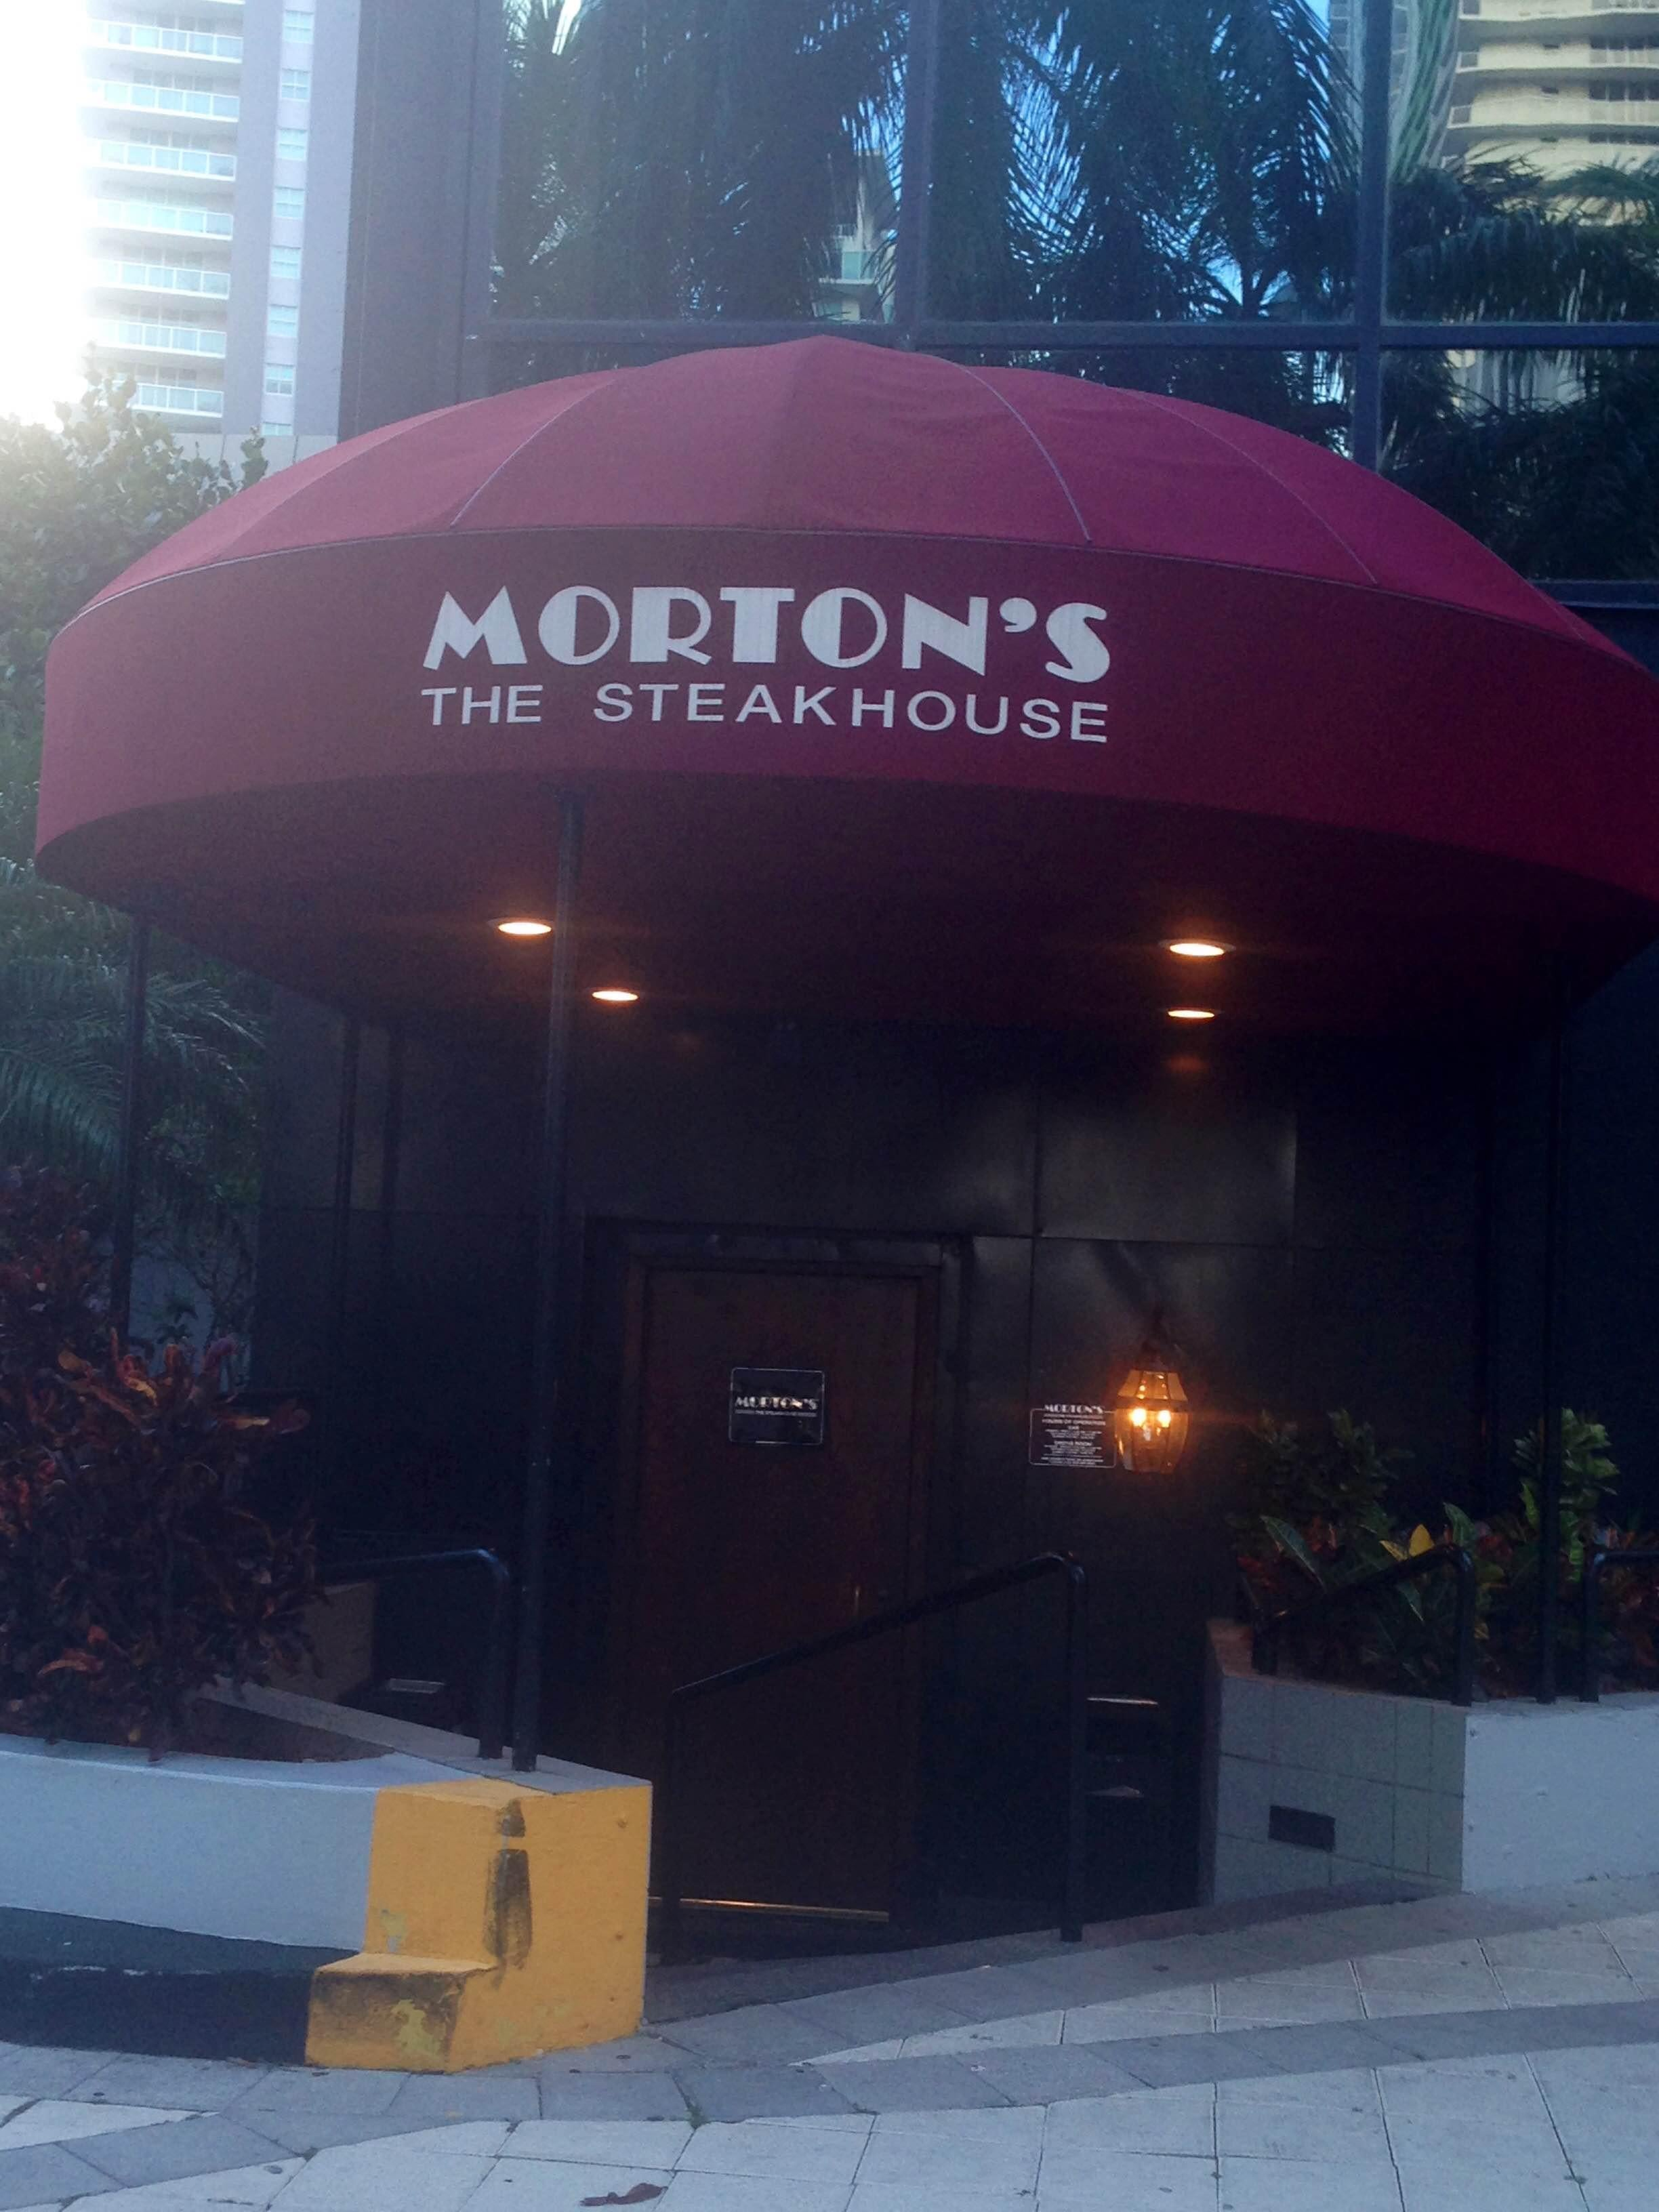 Nieve en Morton's The Steakhouse